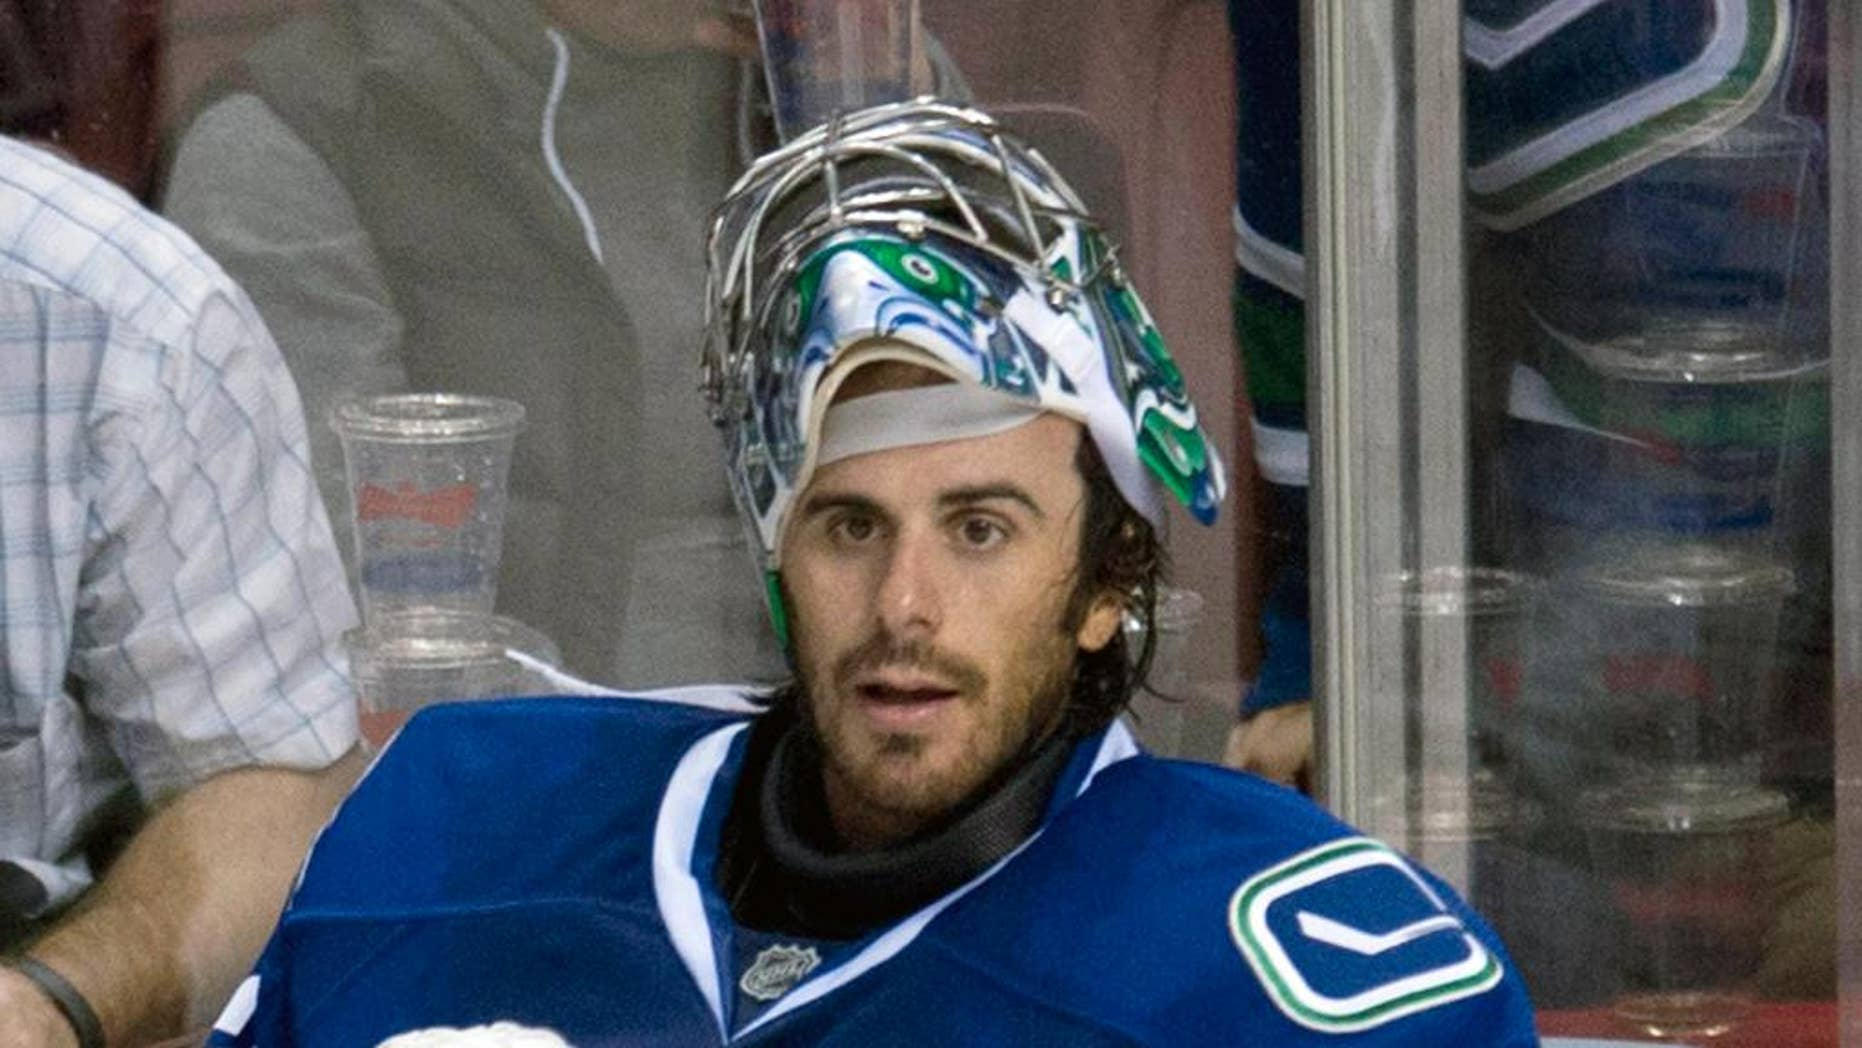 Vancouver Canucks goalie Ryan Miller prepares to leave the bench following the Canucks loss to the Arizona Coyotes in Vancouver, British Columbia, Monday, Sept. 29, 2014. (AP Photo/The Canadian Press, Jonathan Hayward)